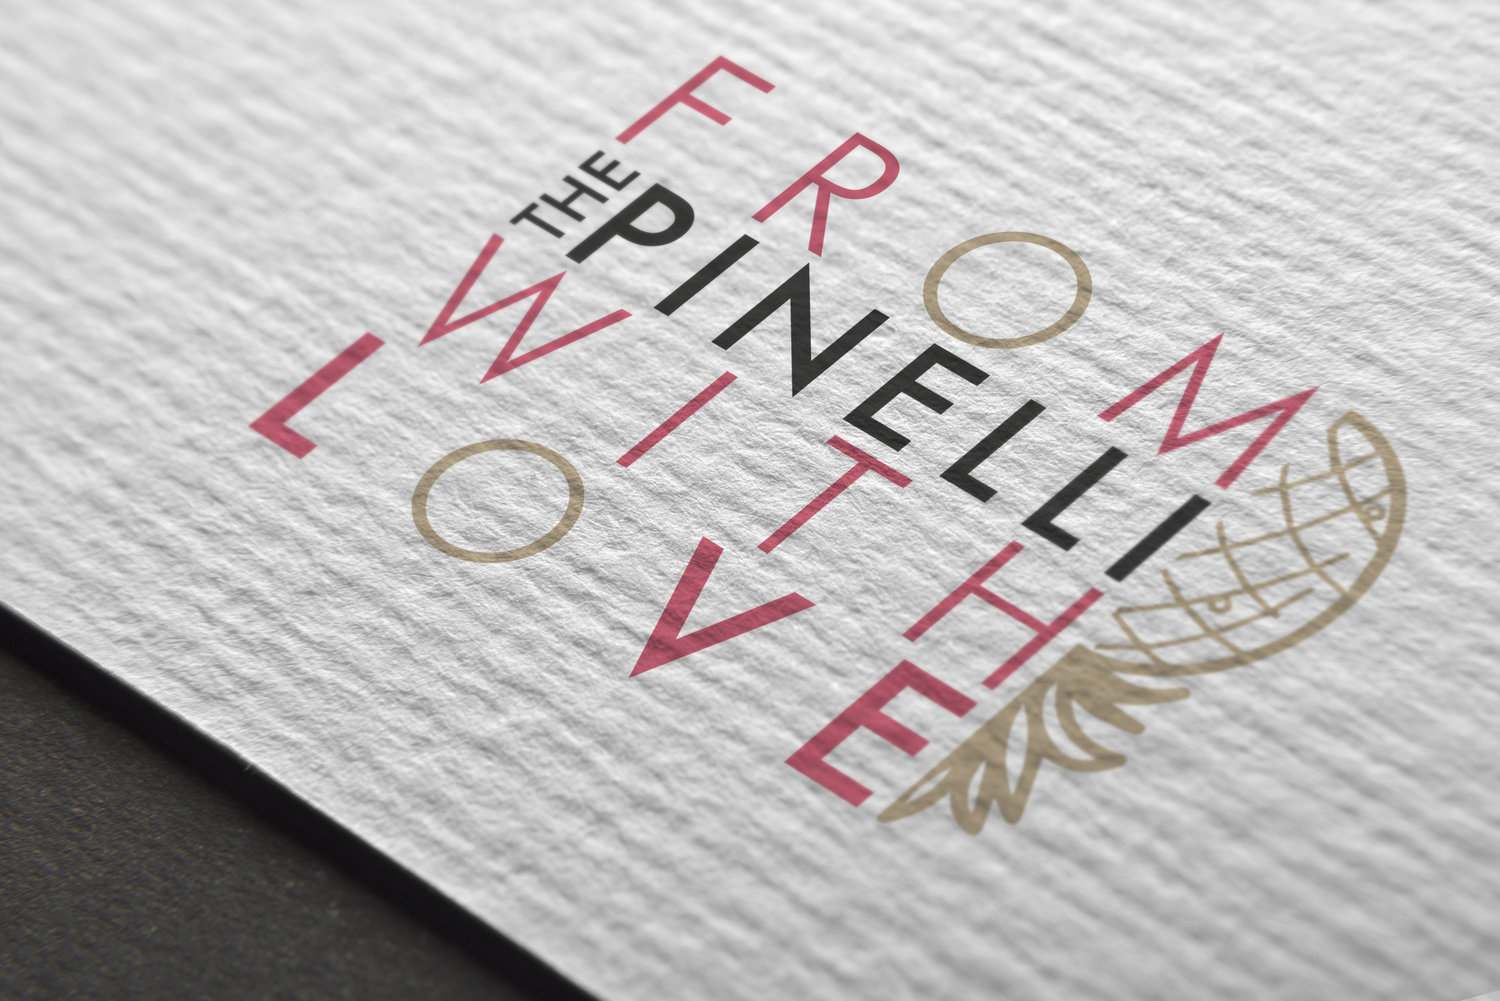 From The Pinelli with Love logo